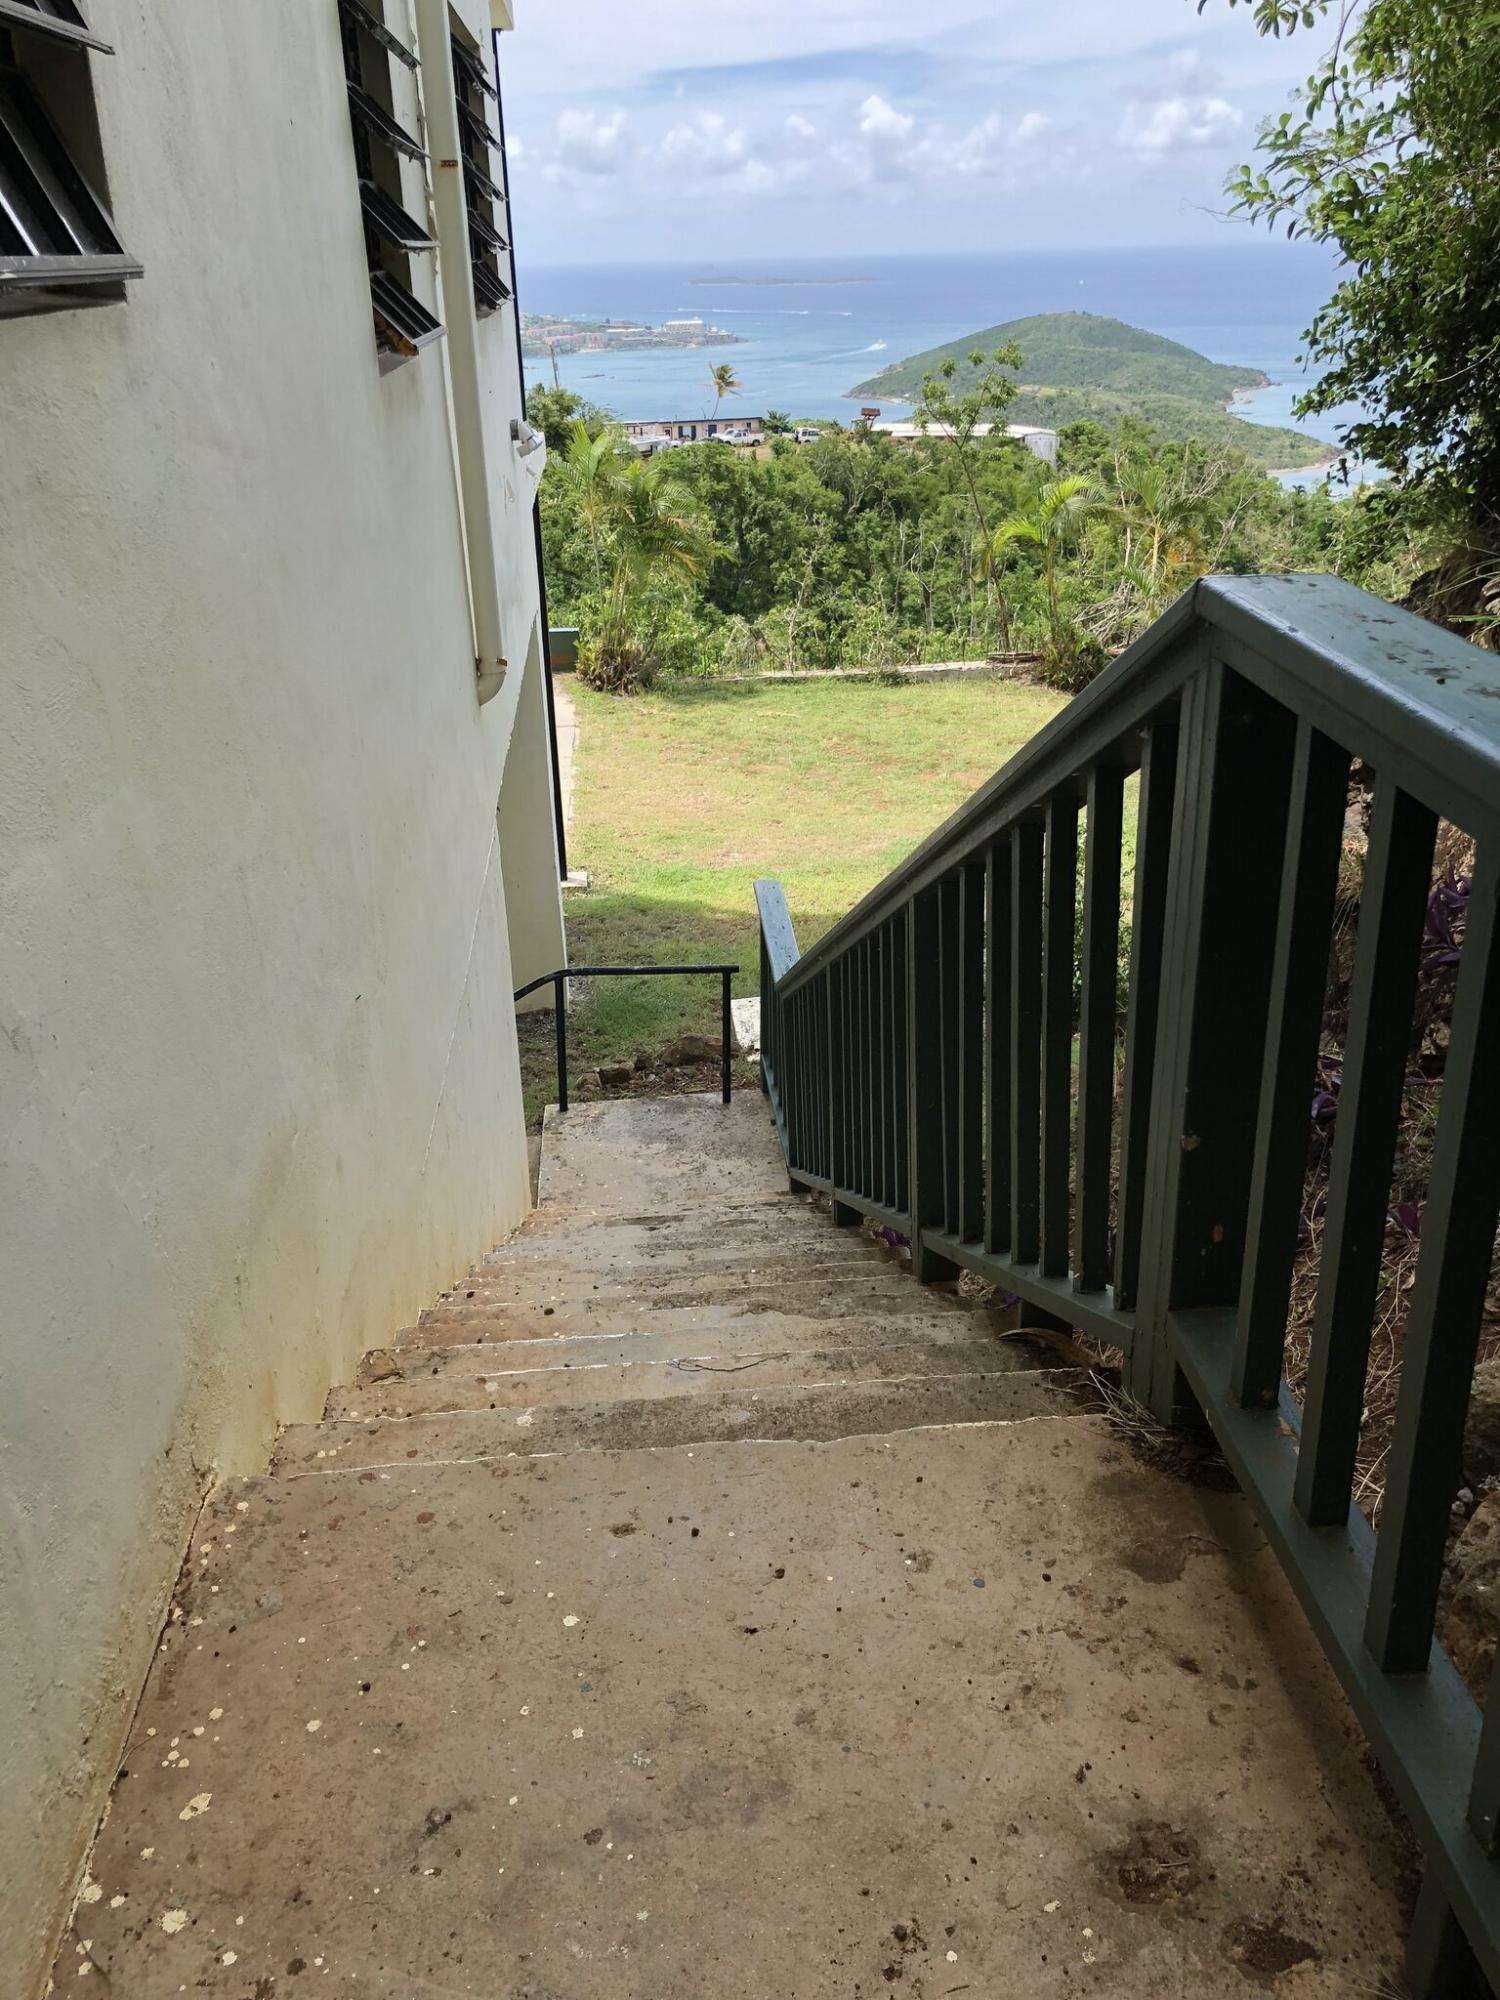 Stair case with a view